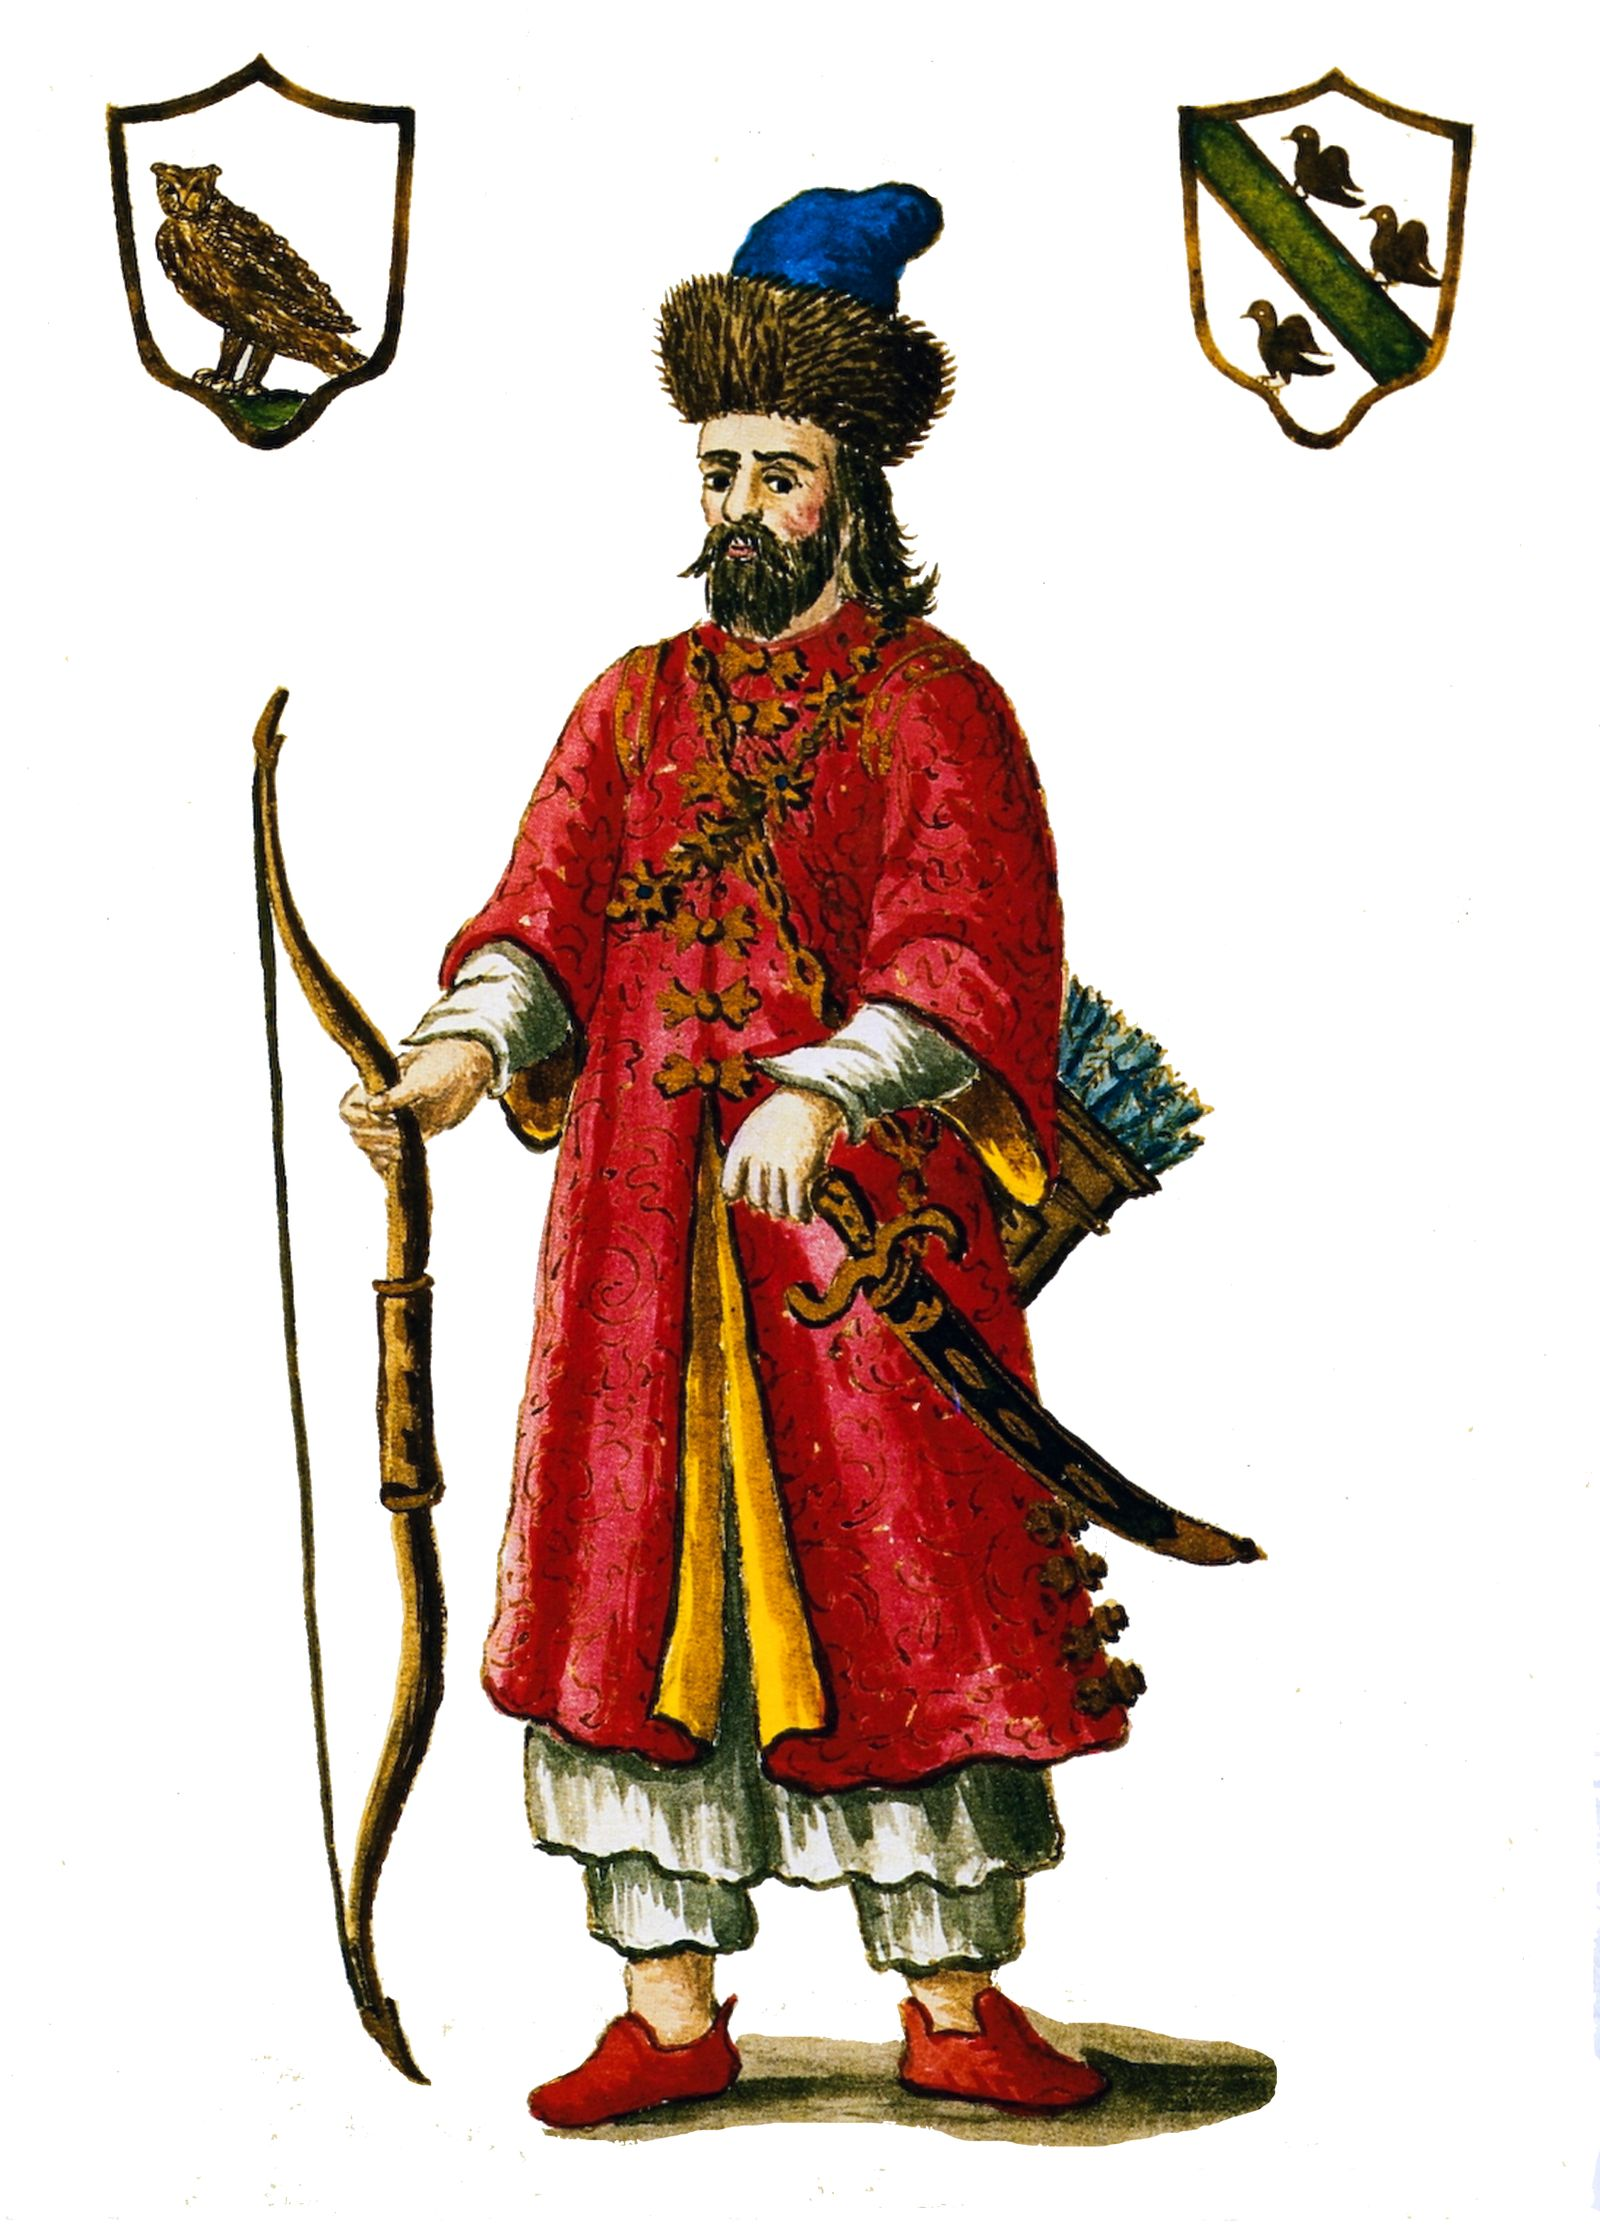 Italy / China: Marco Polo (c.1254Ñ1324) depicted wearing 'Tartar' dress, 19th century